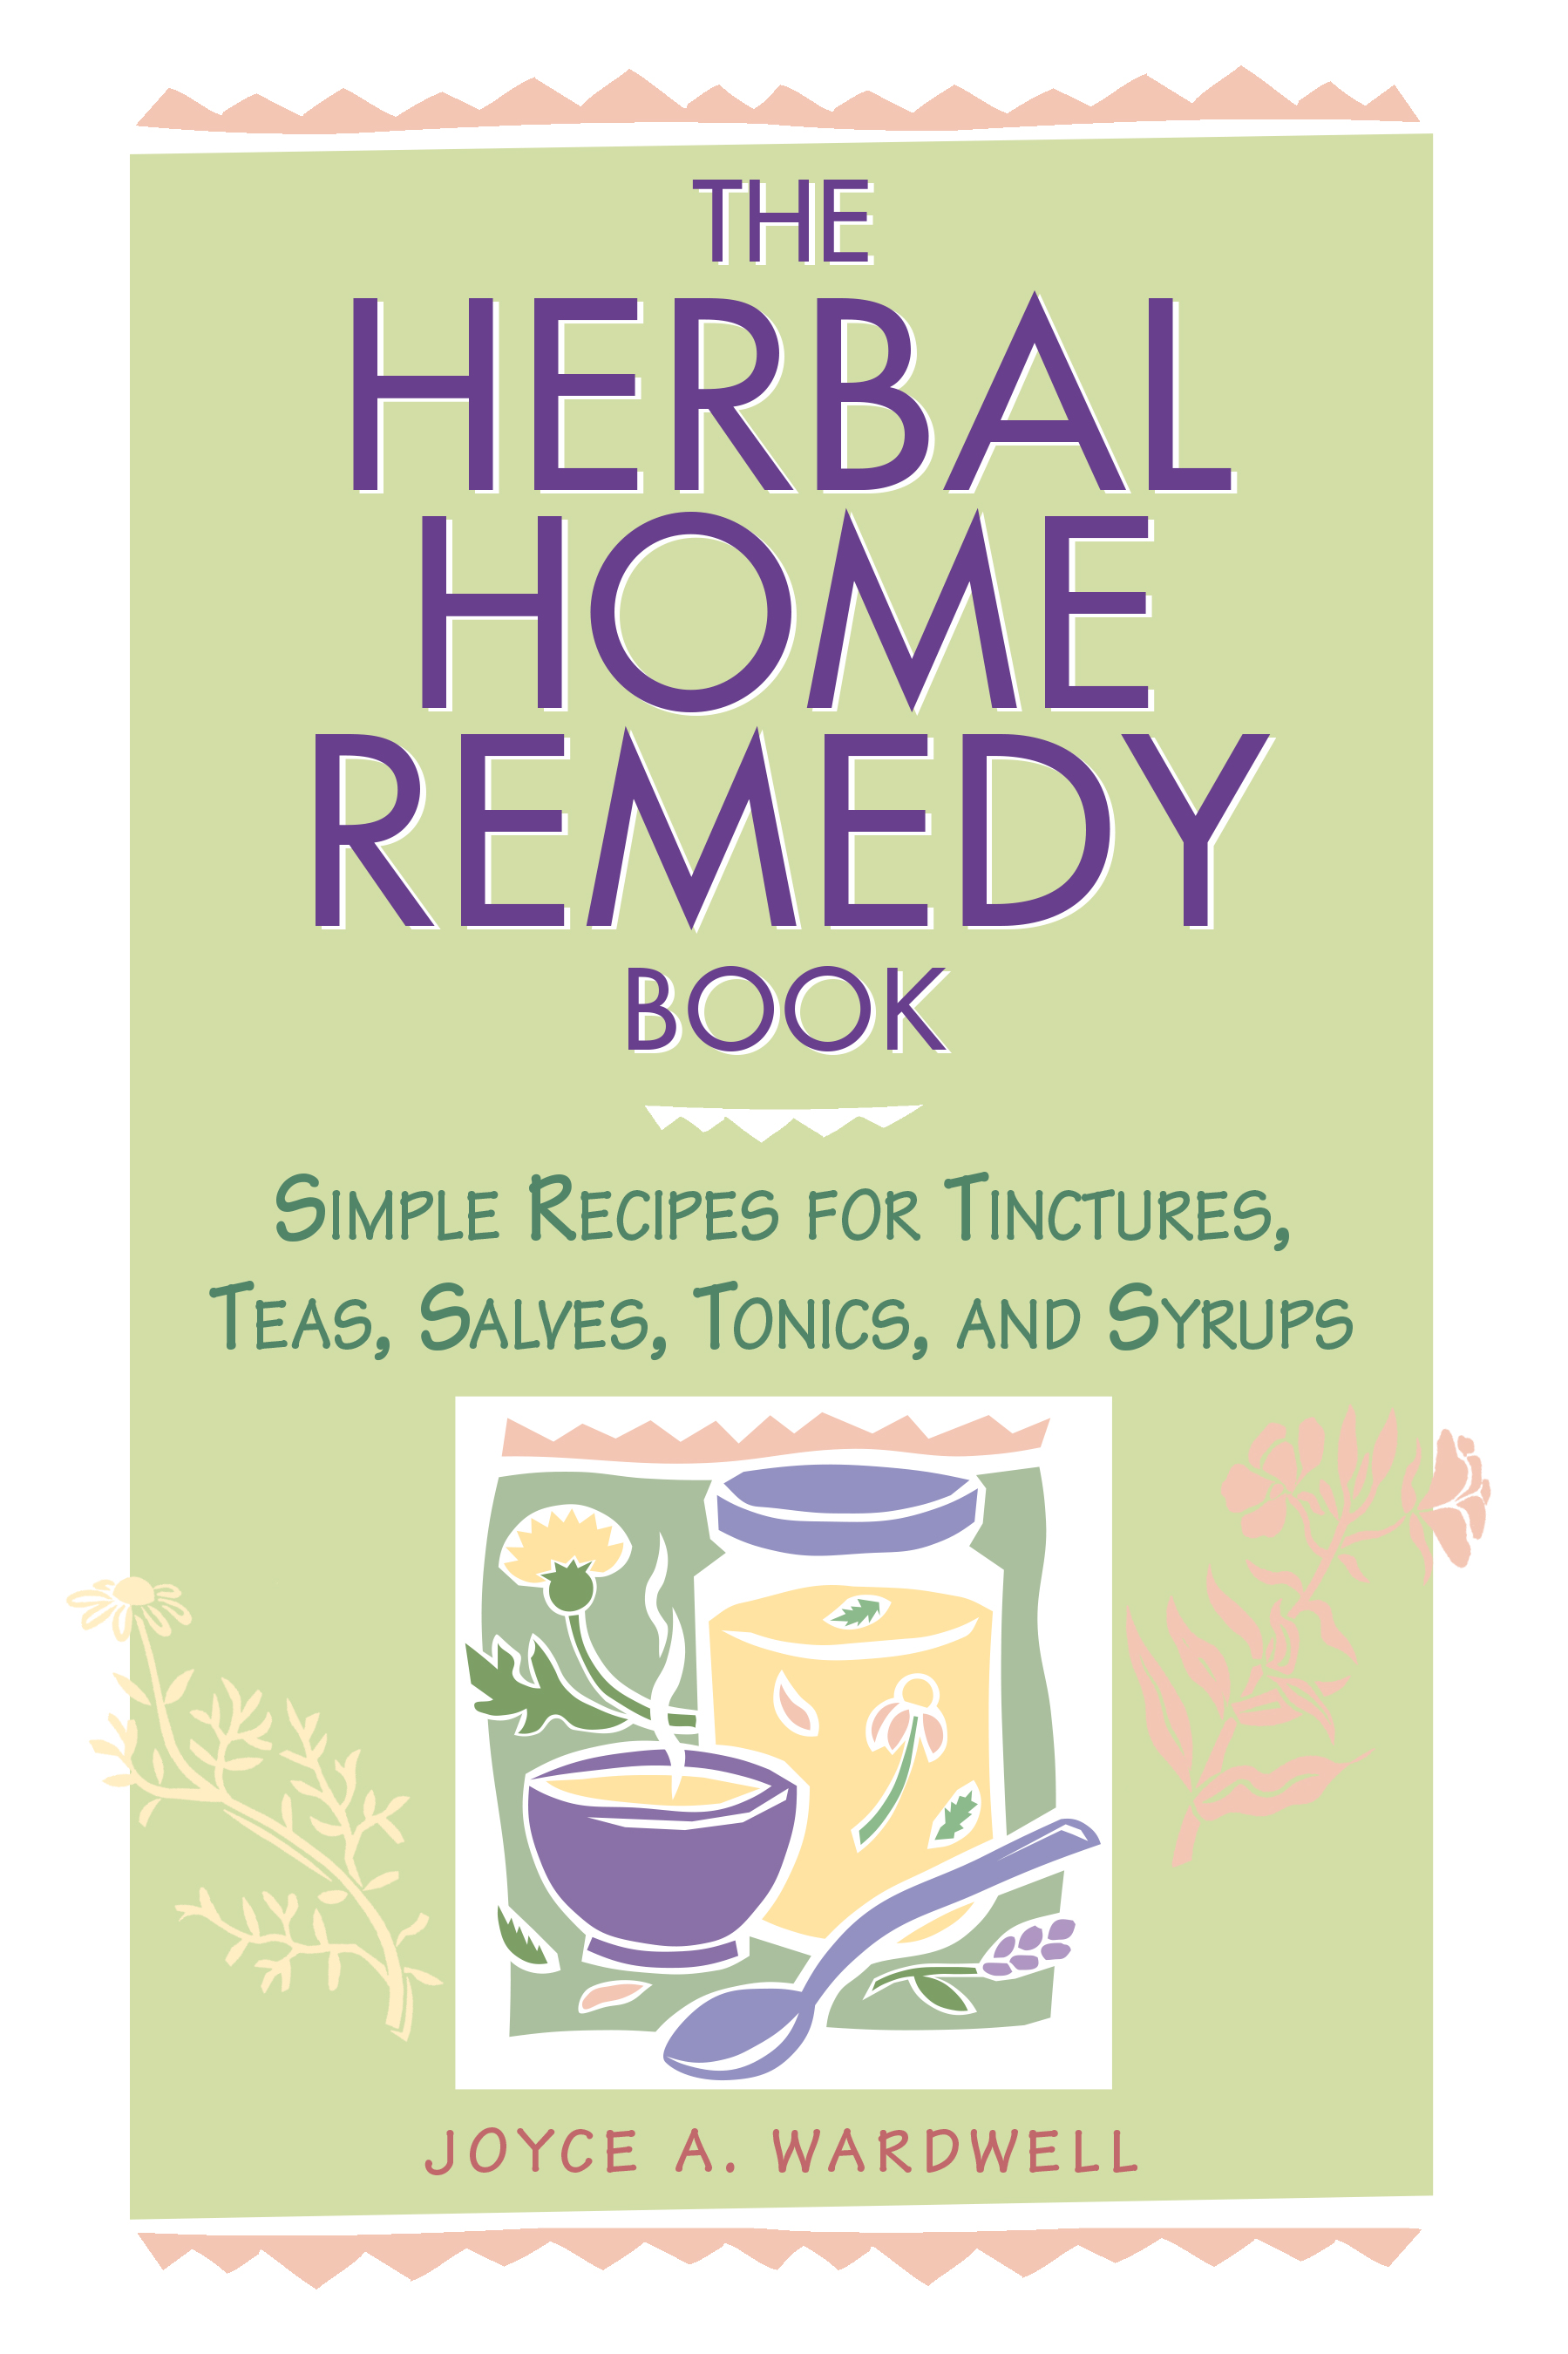 The Herbal Home Remedy Book Simple Recipes for Tinctures, Teas, Salves, Tonics, and Syrups - Joyce A. Wardwell